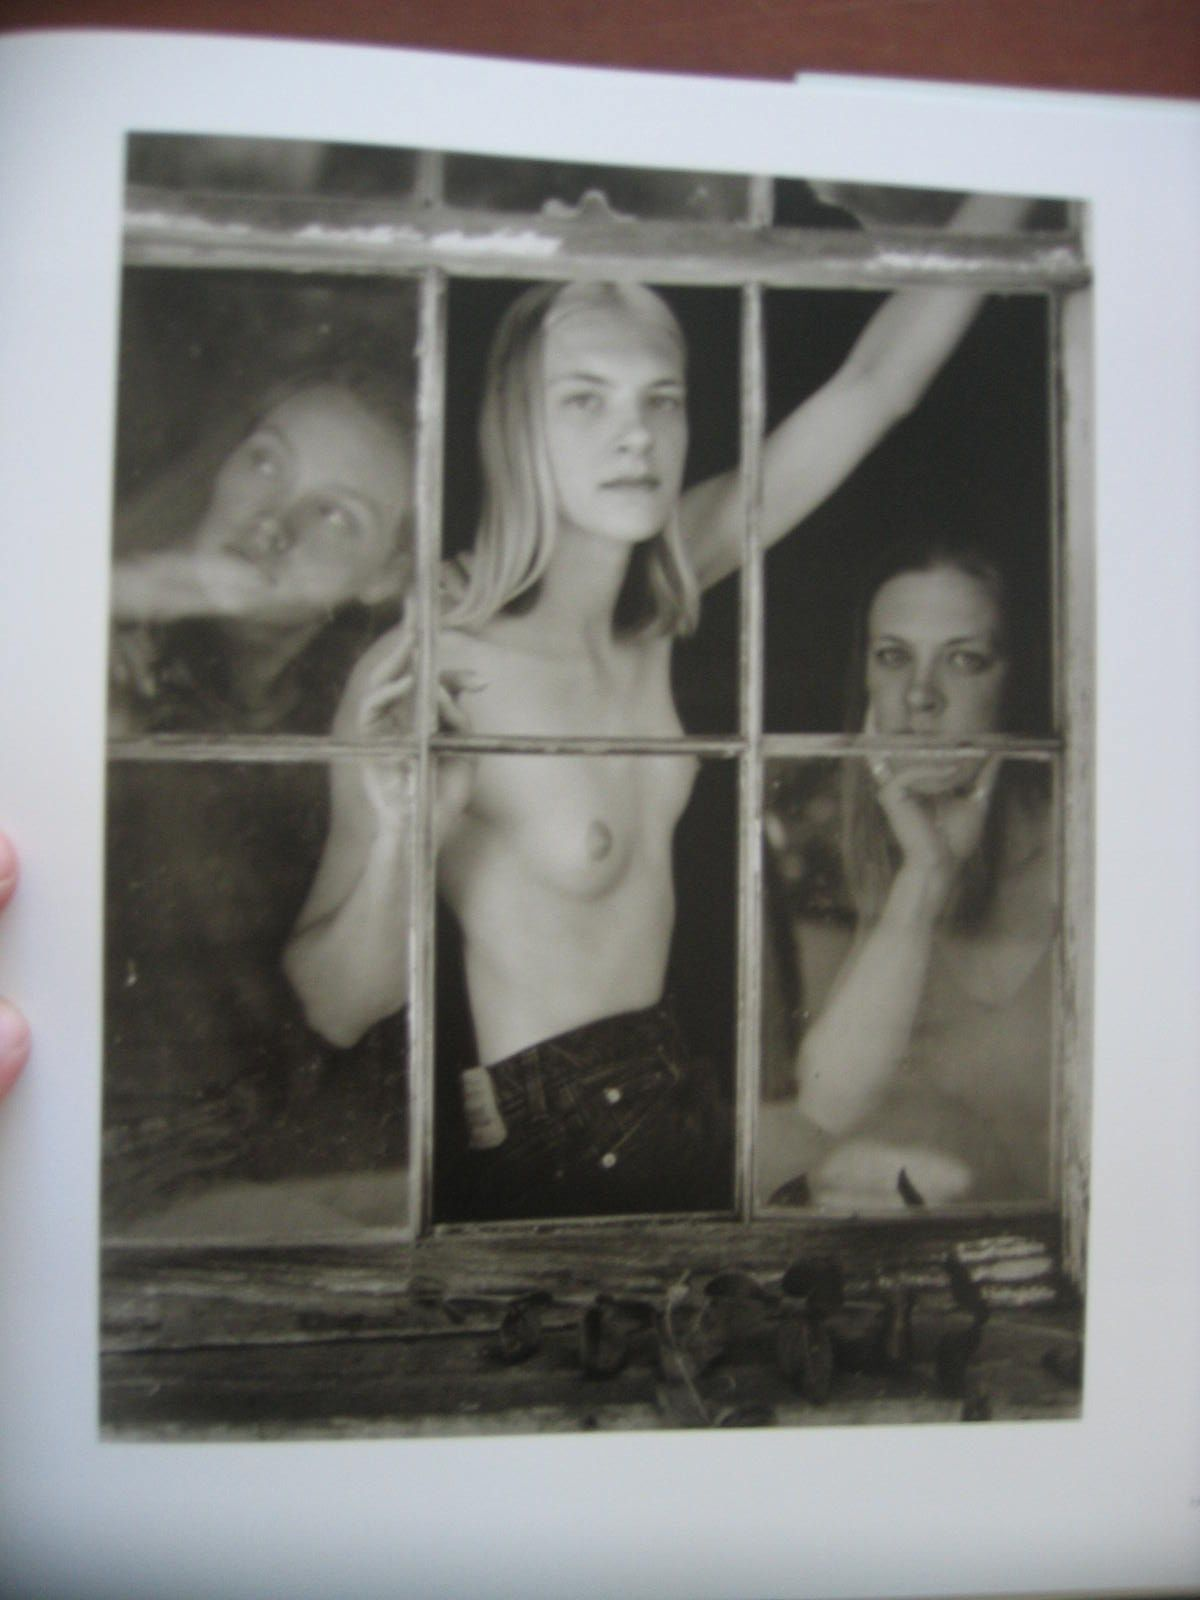 jock sturges photos free